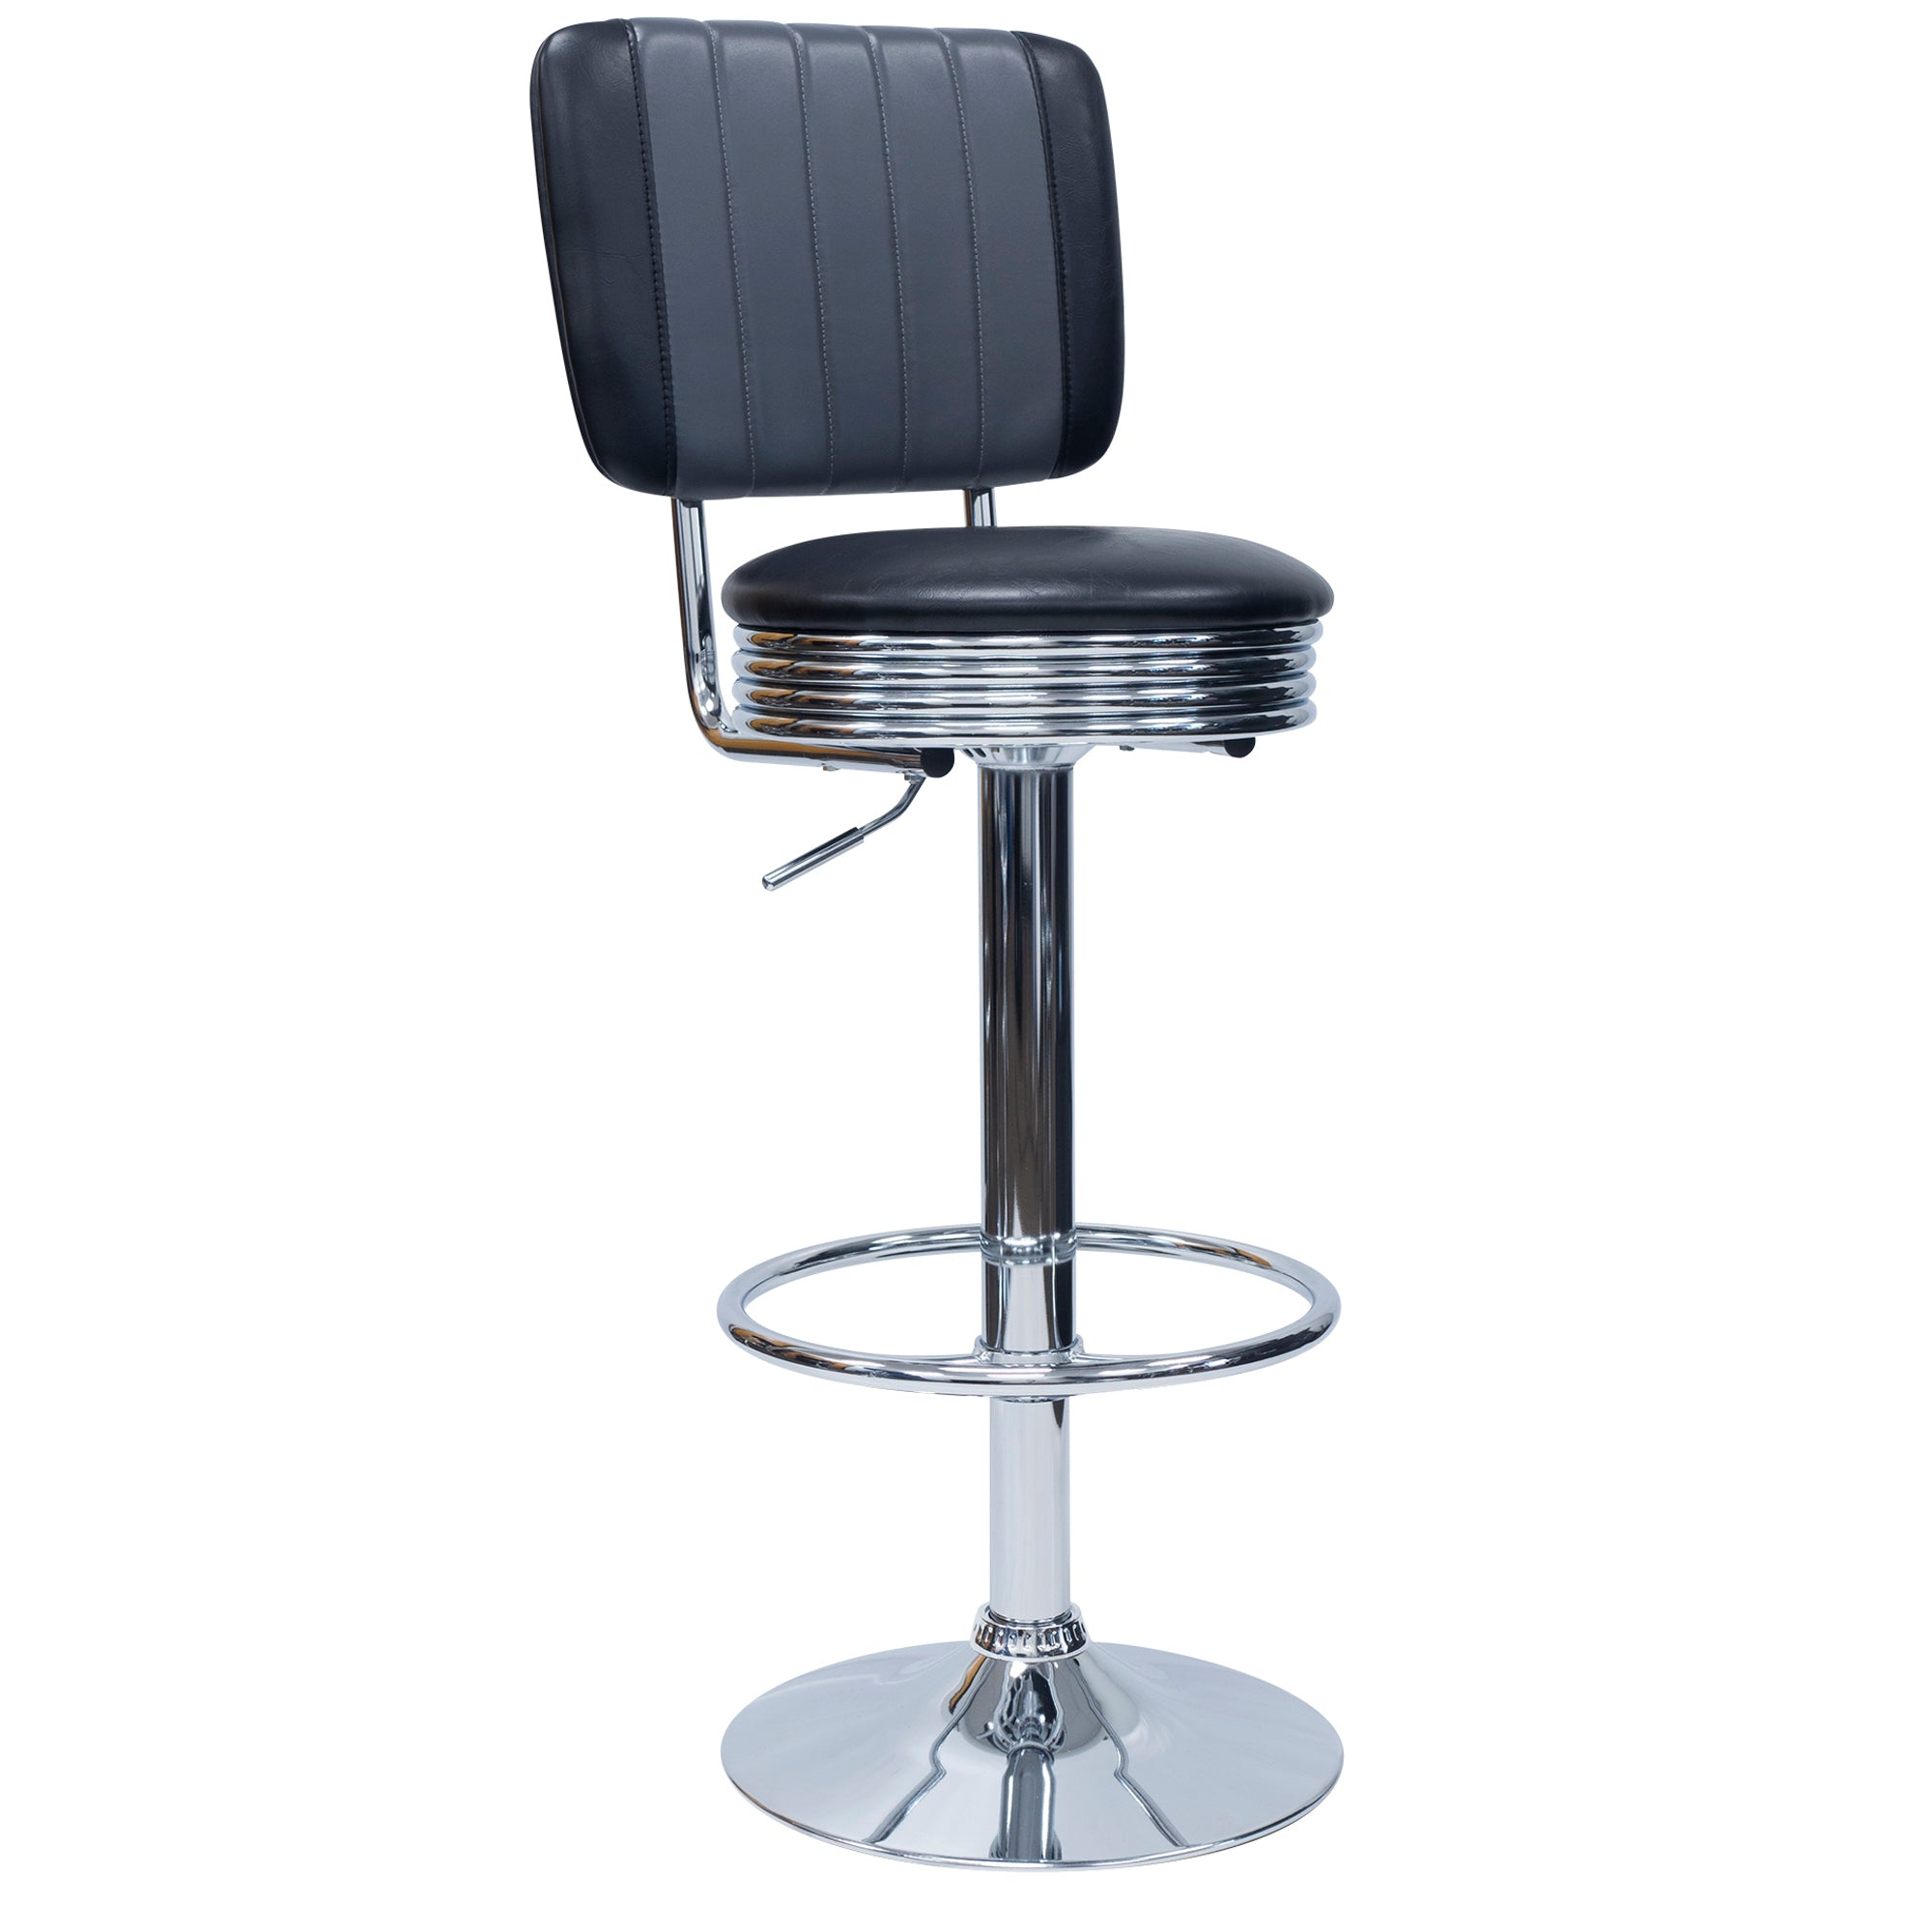 851018 Retro Adjustable Height Stool With Backrest